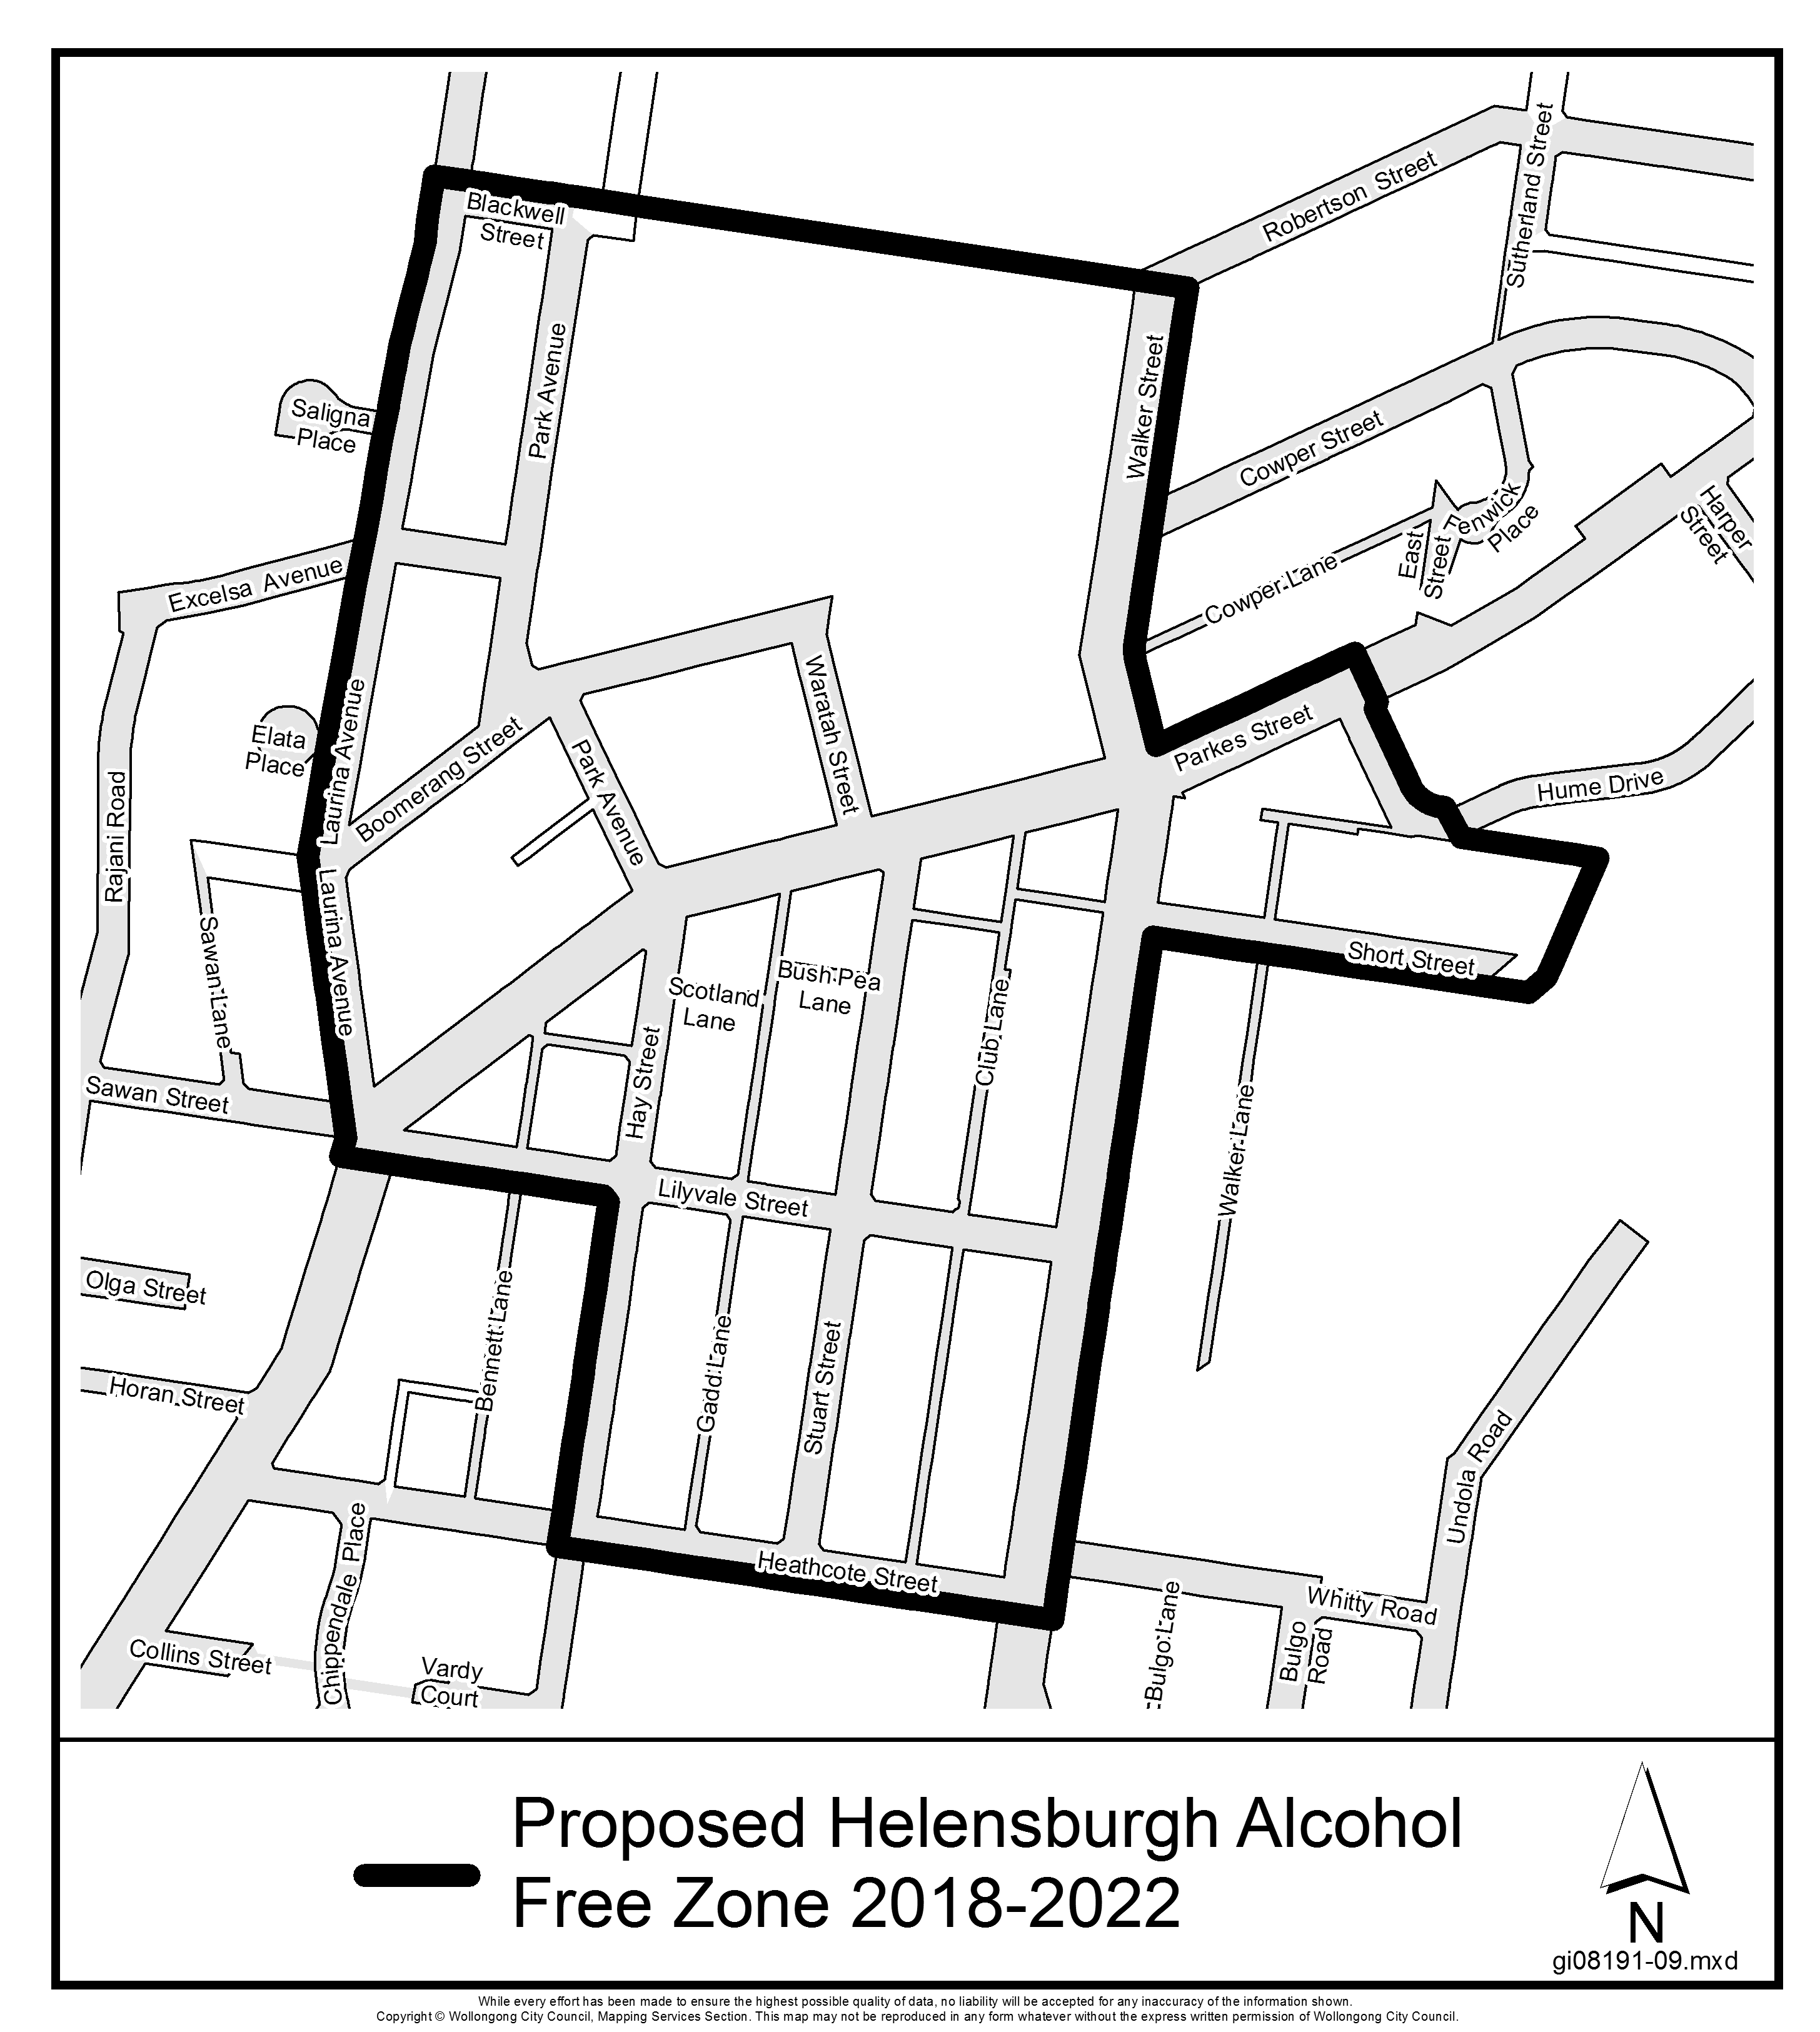 Proposed helensburgh alcohol free zone 2018 2022